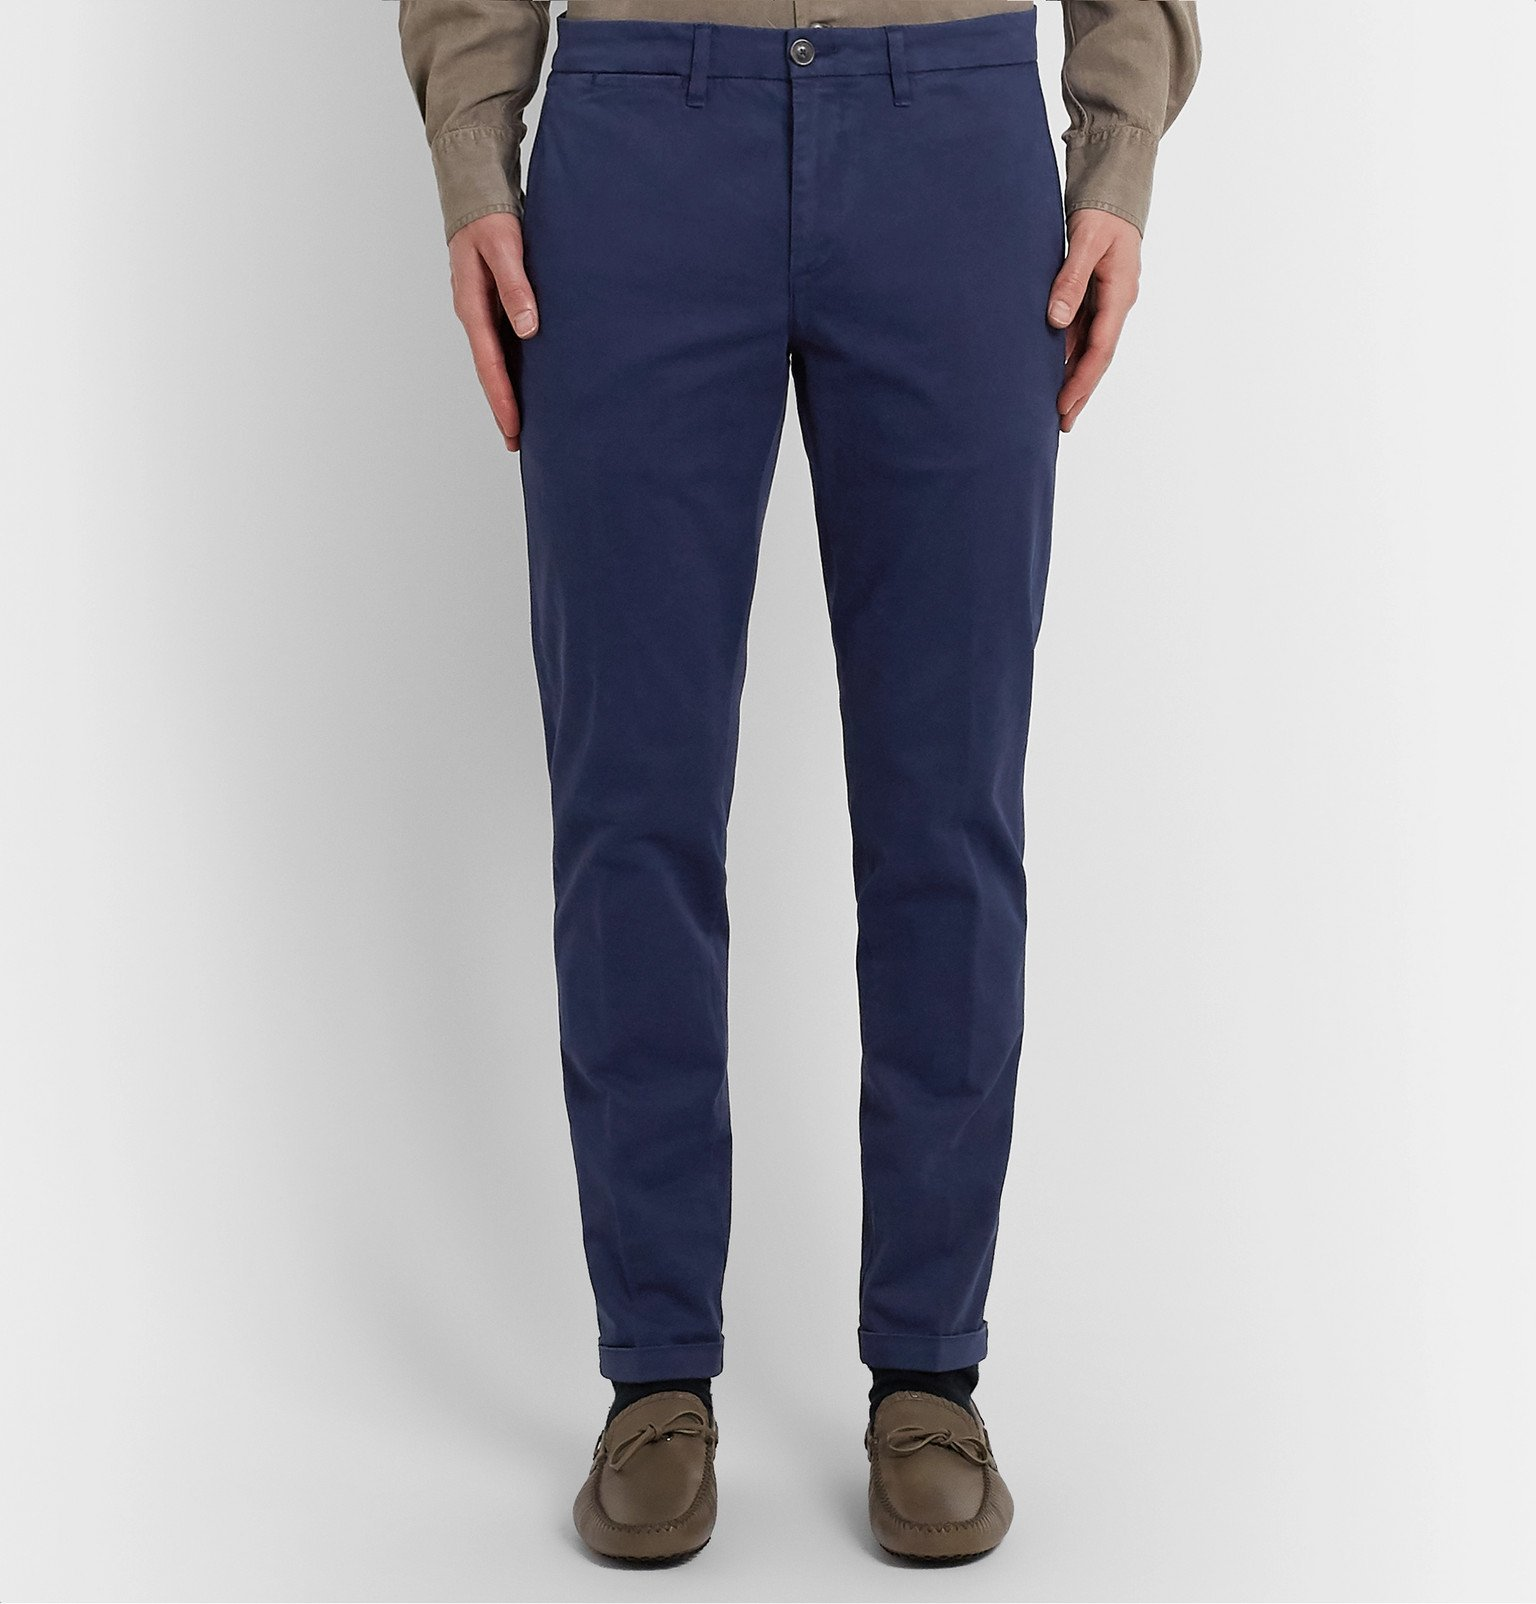 Tod's - Navy Slim-Fit Stretch-Cotton Twill Chinos - Blue